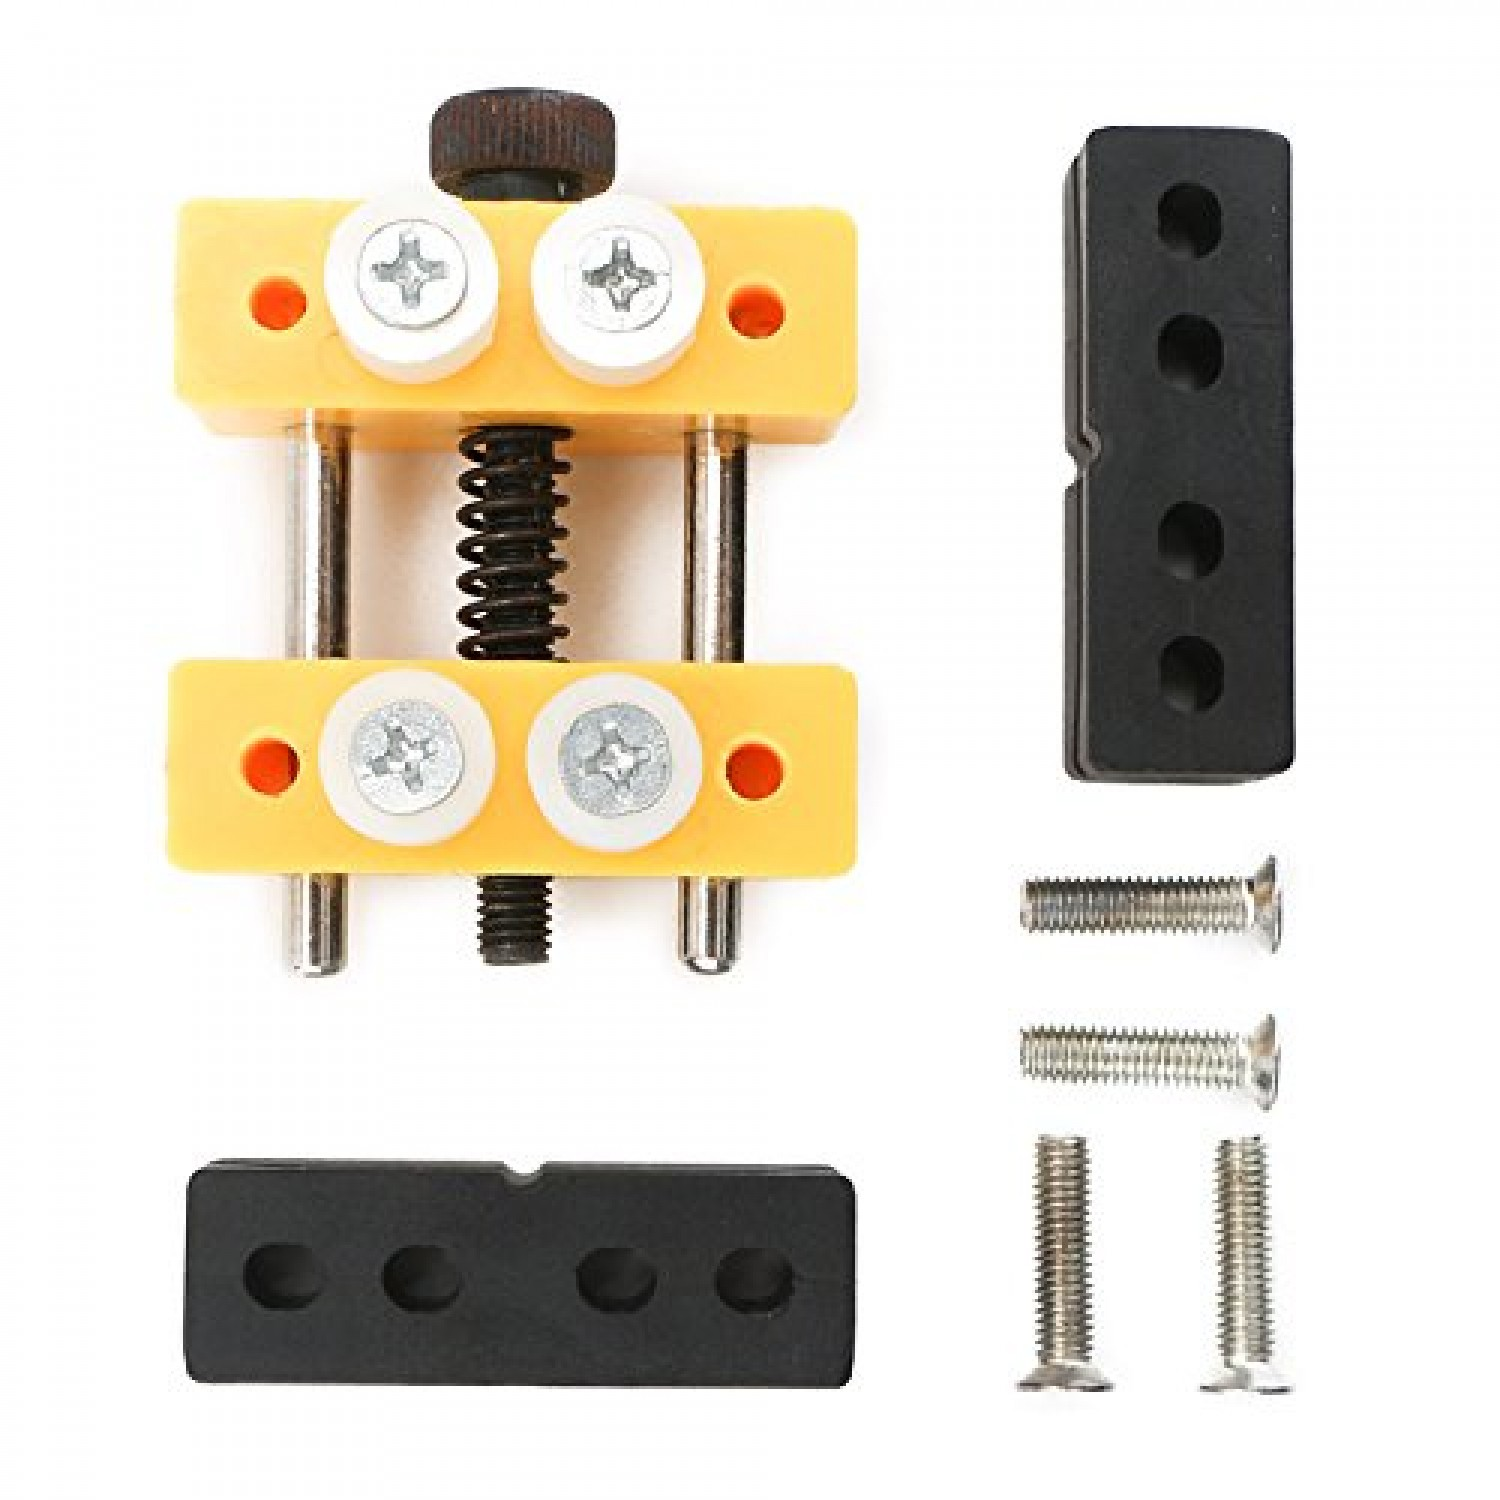 Universal diy mini bench vise micro table clamp small vice lock